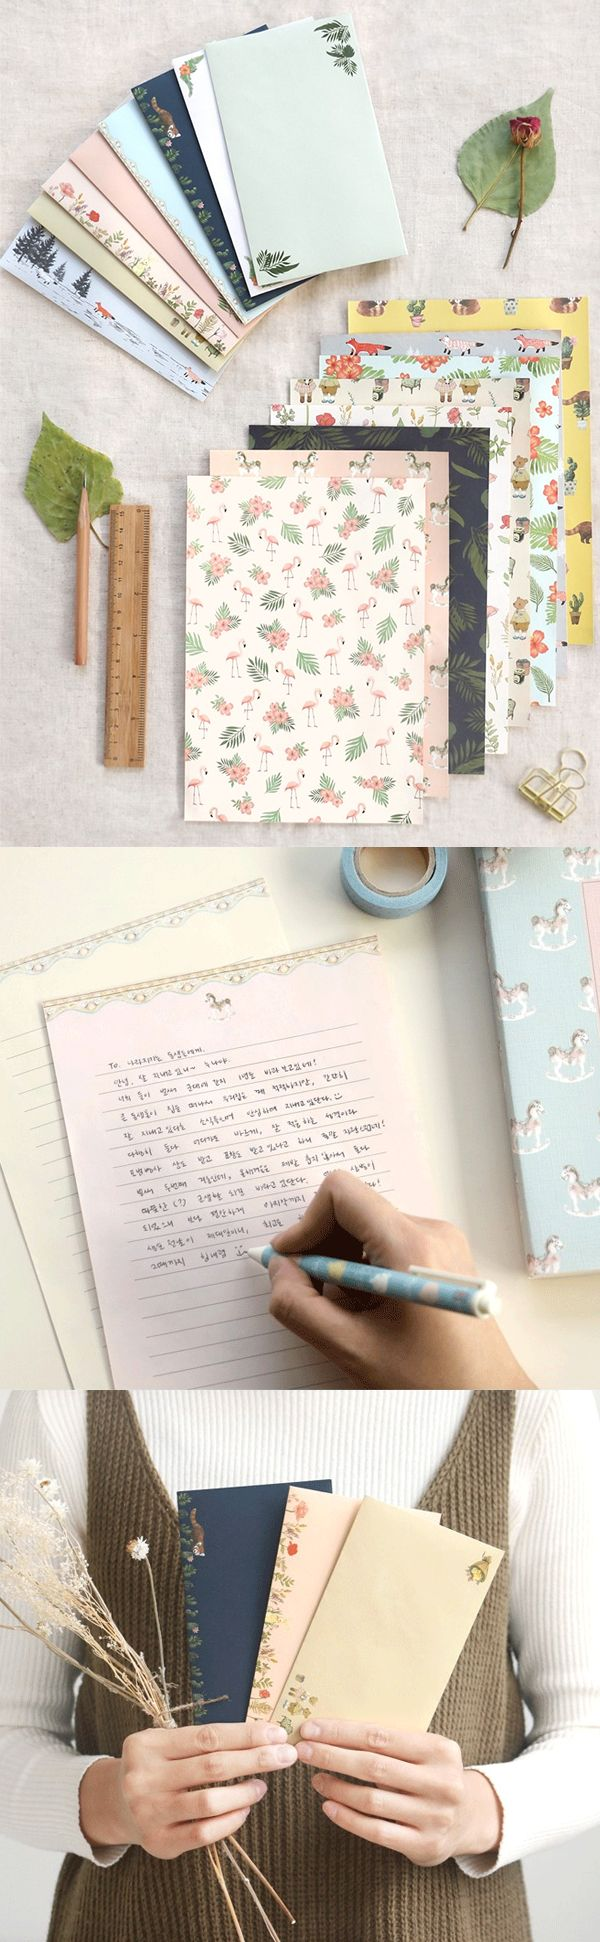 Emails are overrated. Send your loved ones personal snail mail with this super cute Pattern Letter Set!